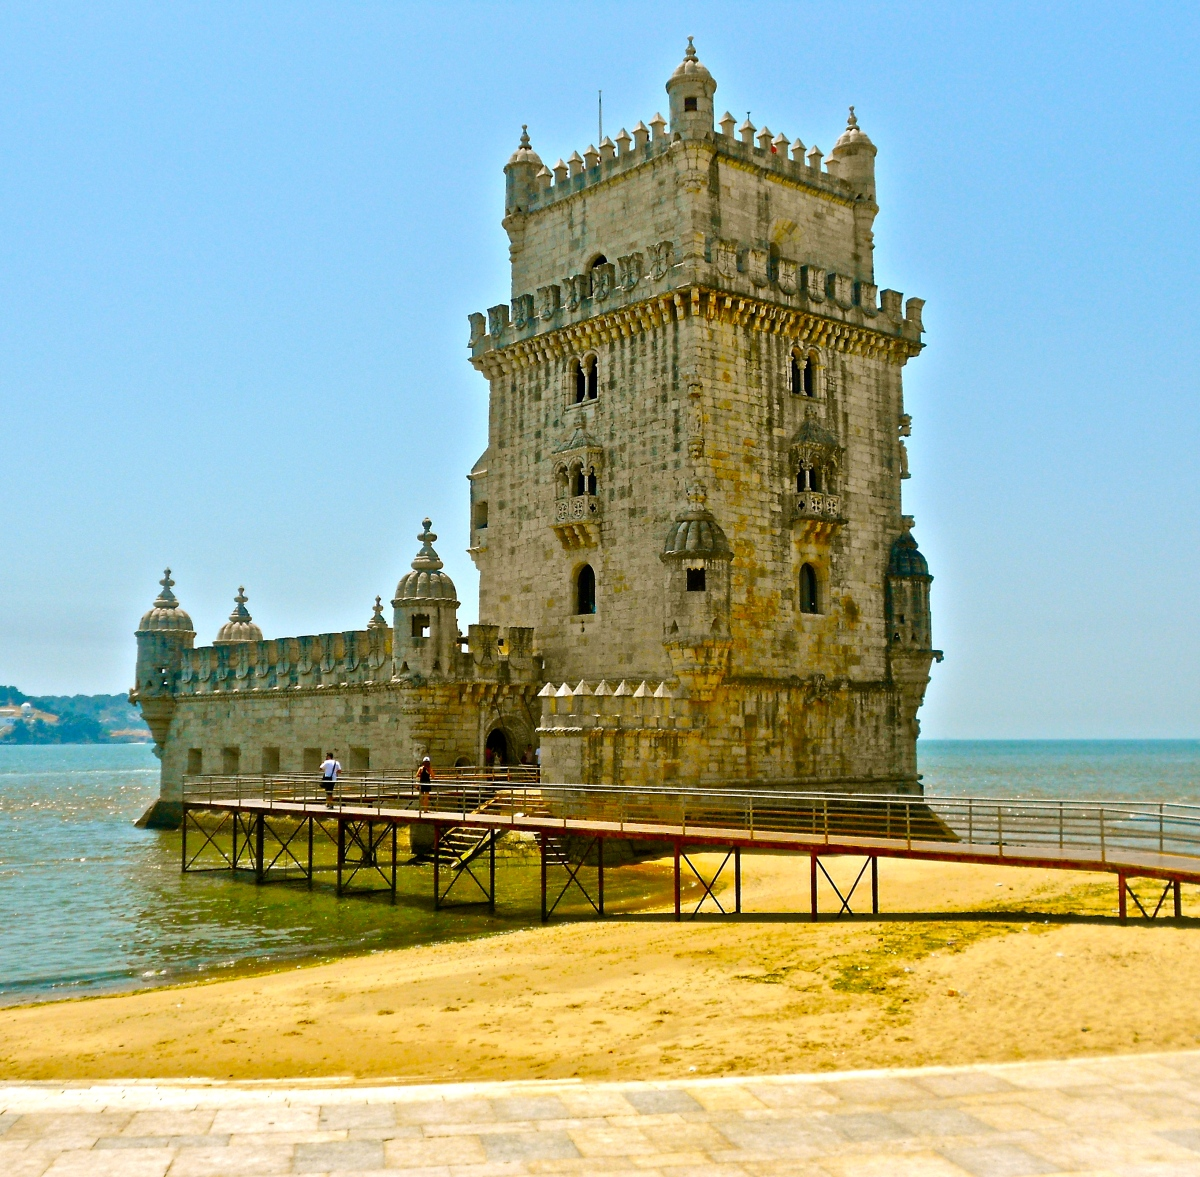 Belém - the one place you must visit in Lisbon.